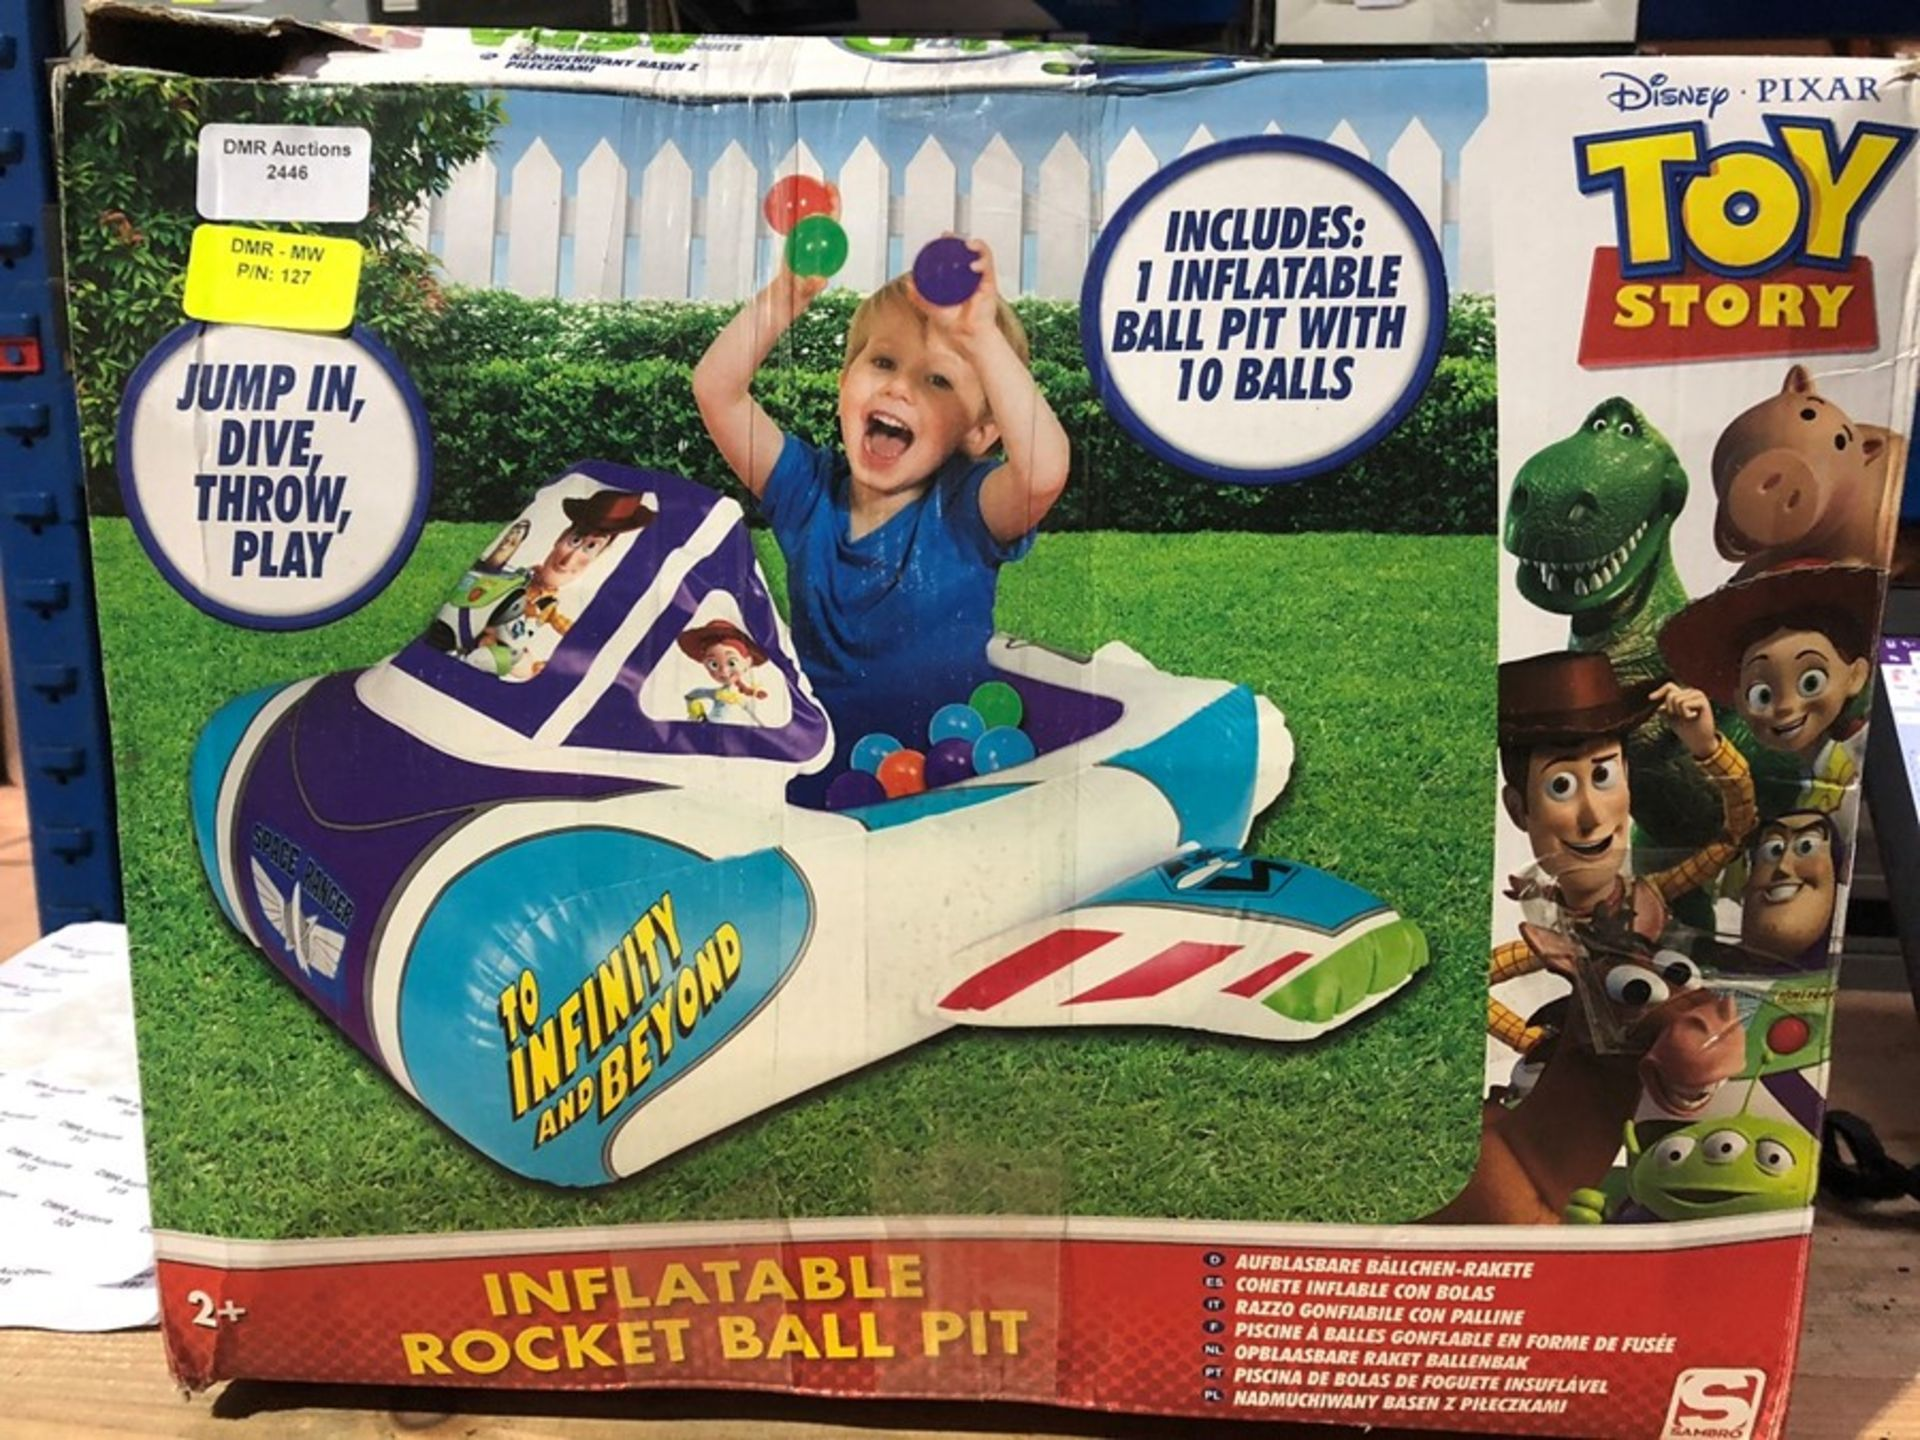 Lot 27 - 1 LOT TO CONTAIN 2 BOXED TOY STORY INFLATABLE ROCKET BALL PIT / RRP £51.96 (PUBLIC VIEWING